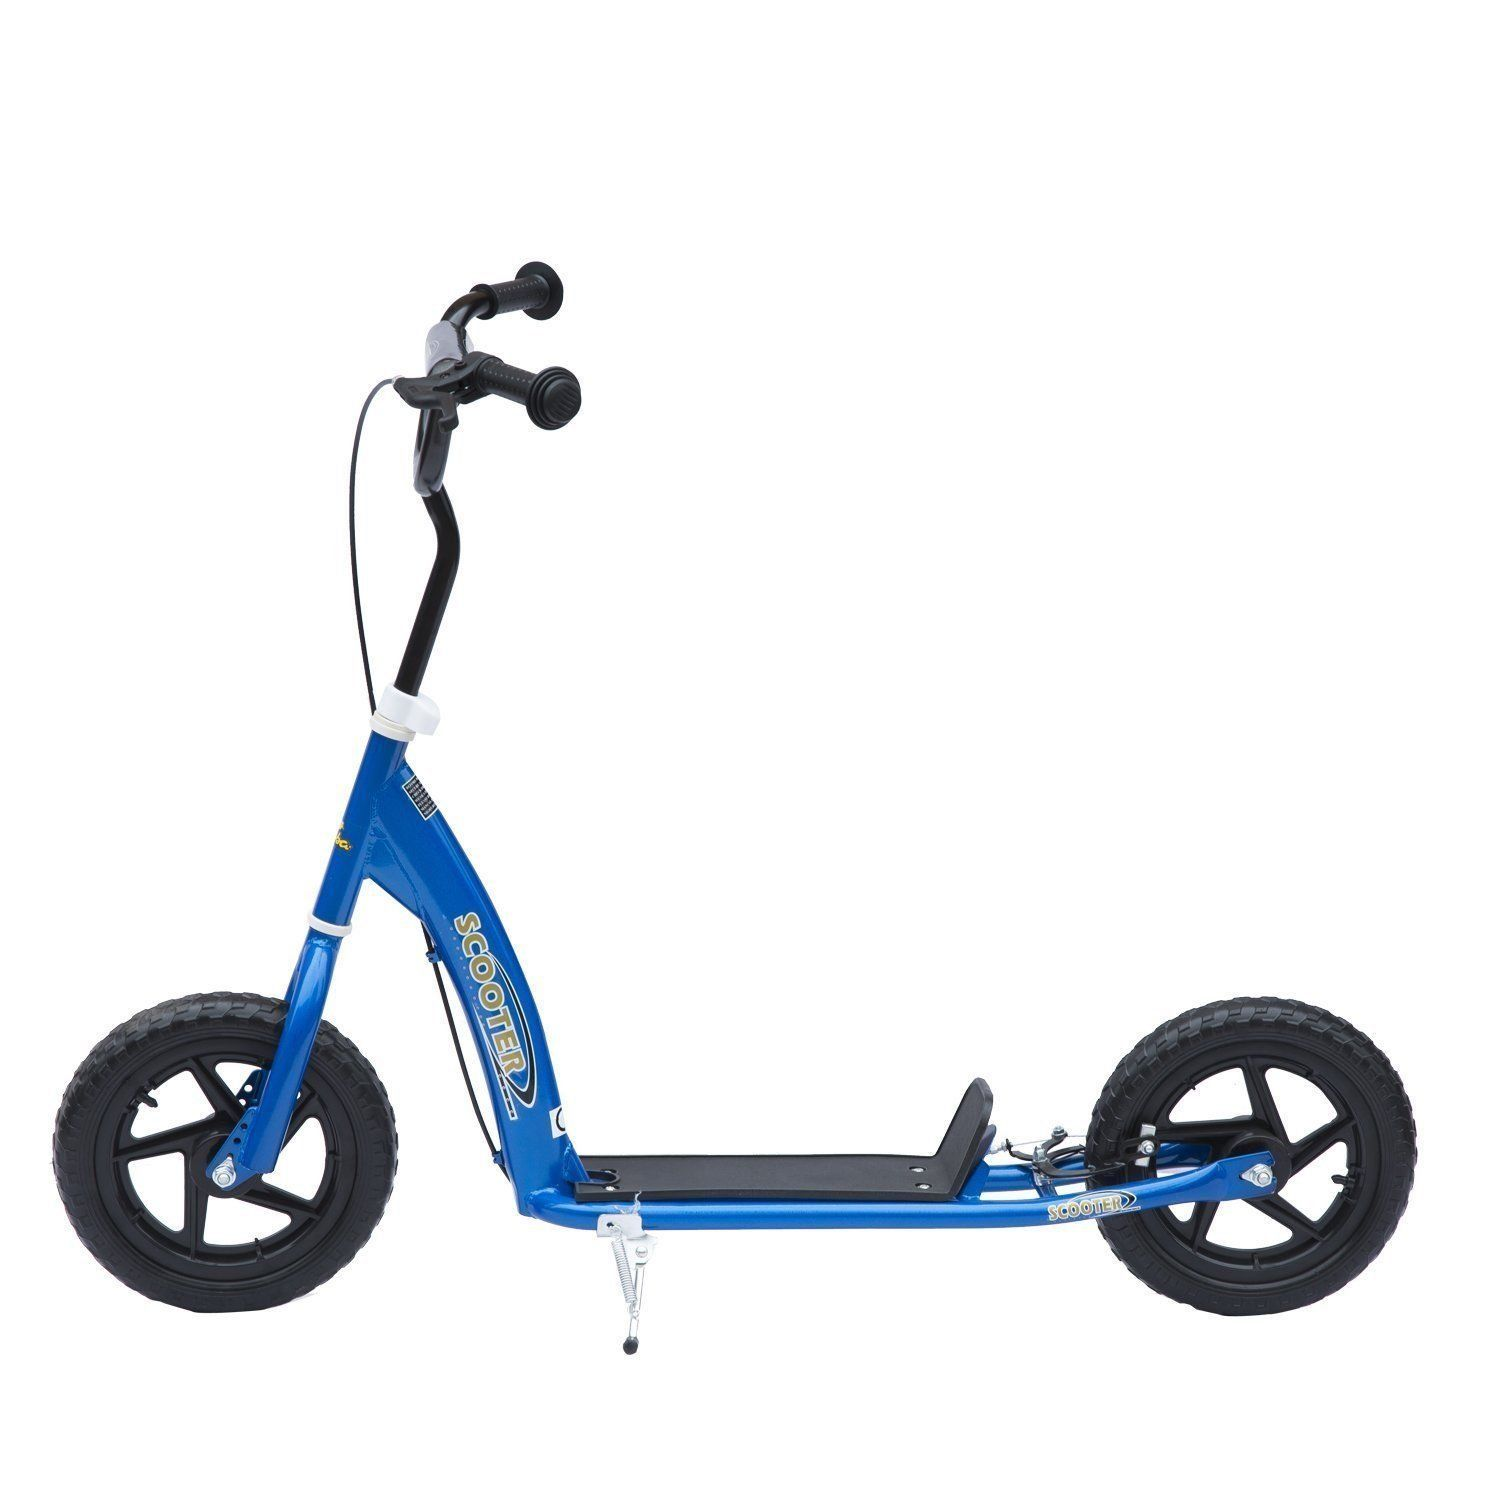 HOMCOM-4-Colours-Push-Scooter-Teen-Kids-Children-Stunt-Bike-Ride-On thumbnail 21